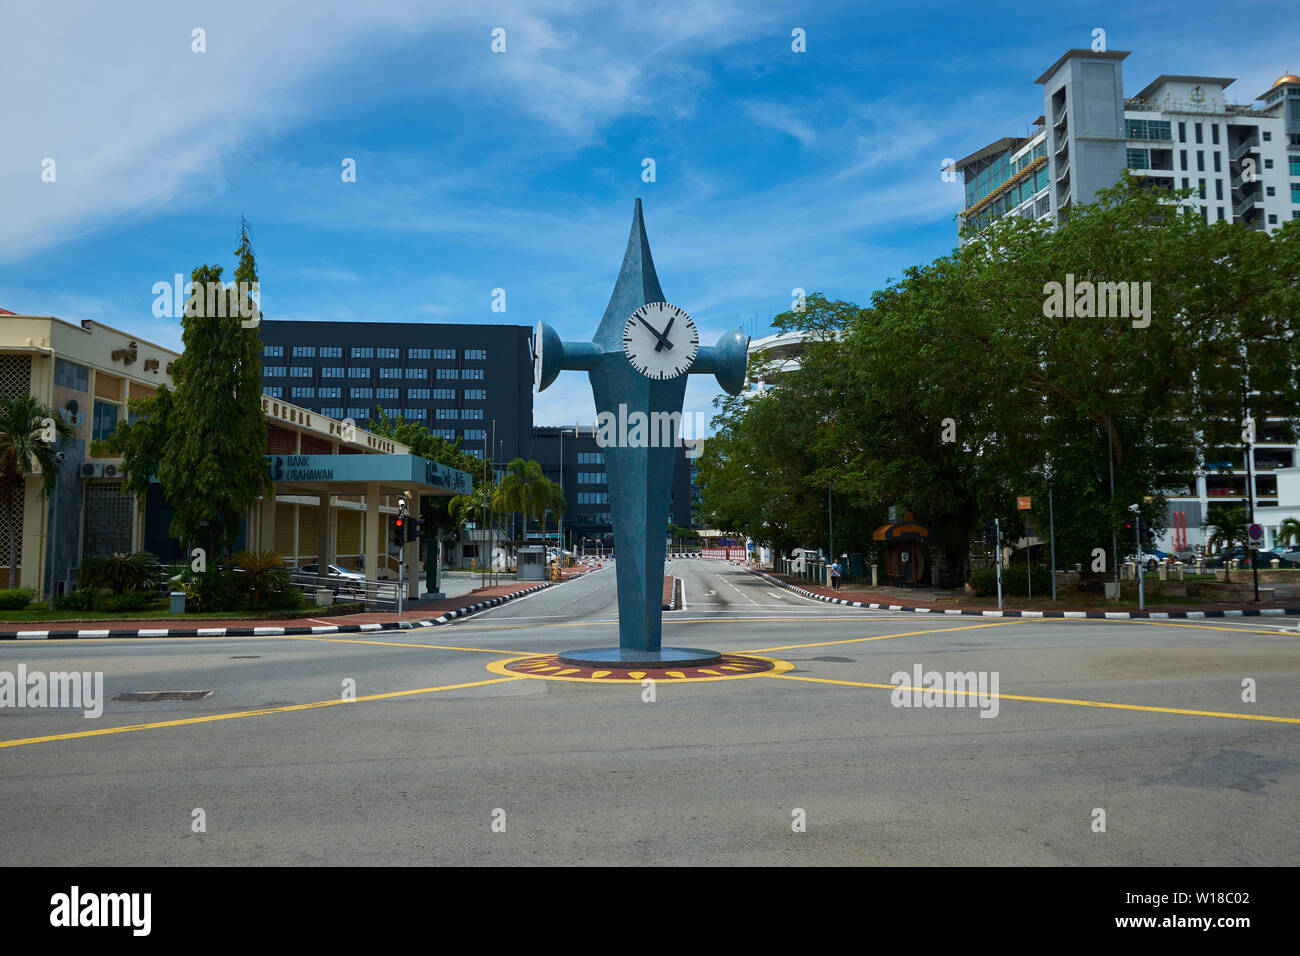 Four faced clock in a downtown intersection in Bandar Seri Begawan, Brunei - Stock Image